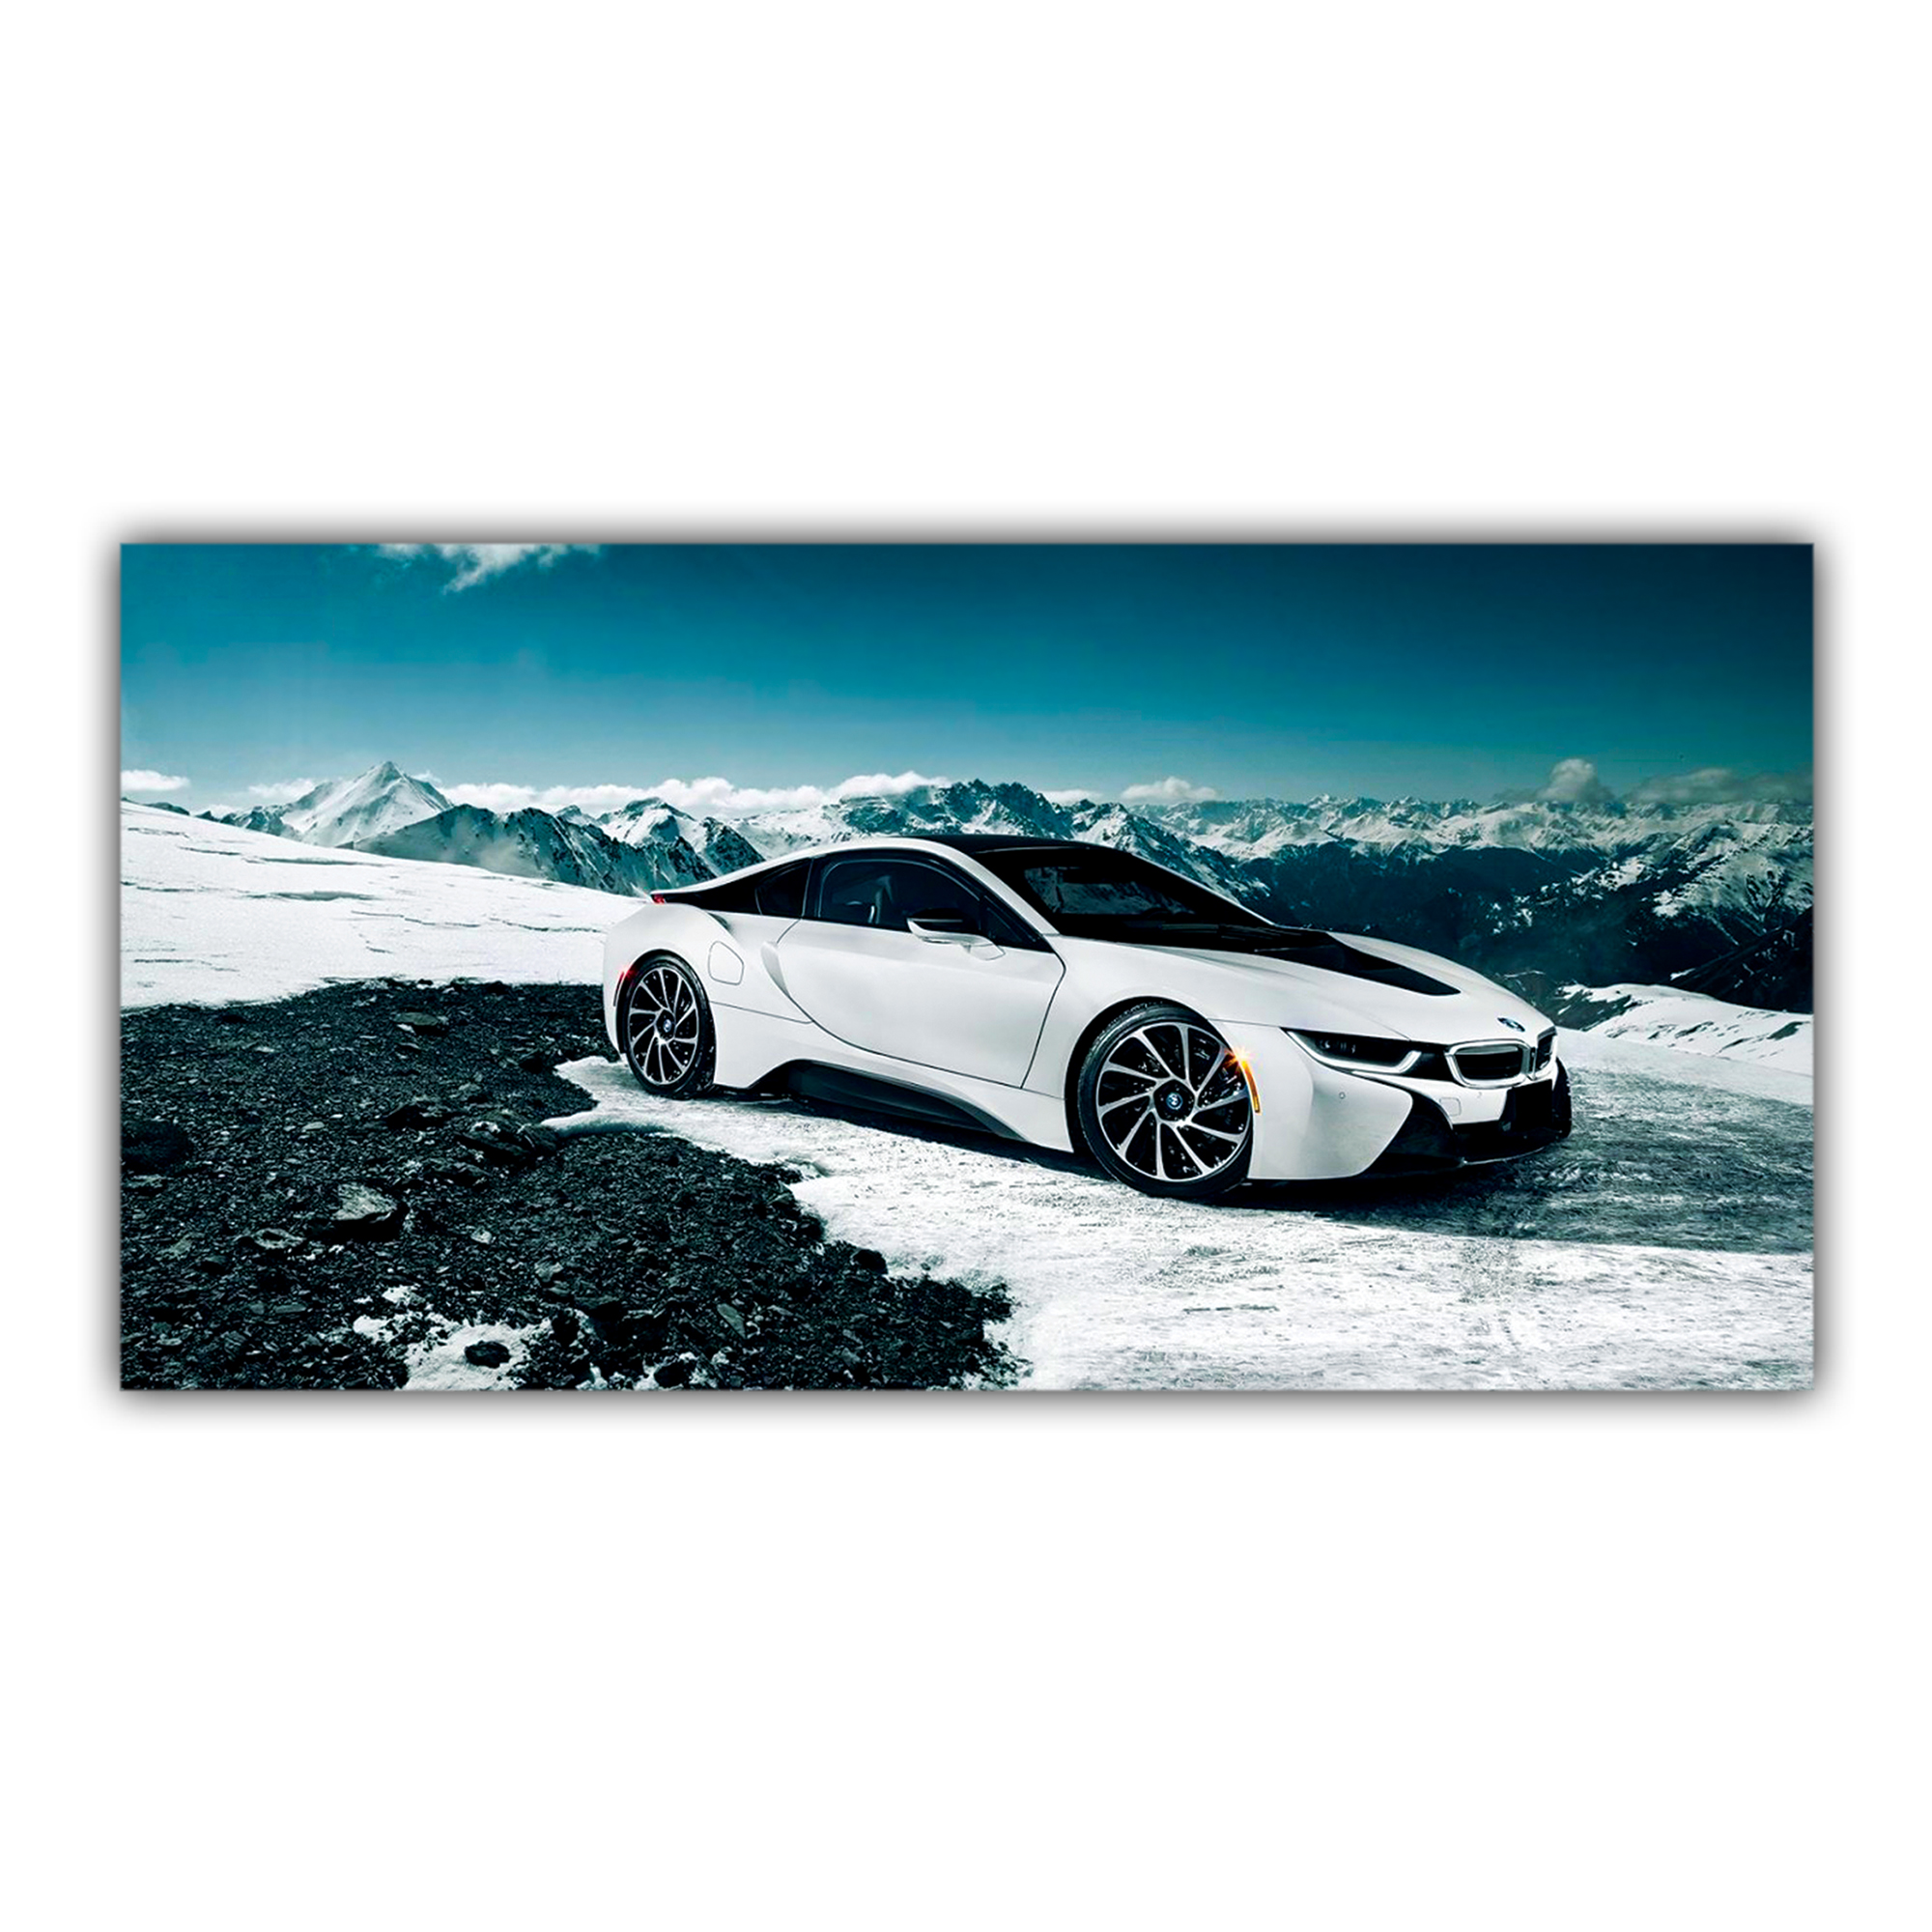 bmw lectrique i8 paysage montagne neige. Black Bedroom Furniture Sets. Home Design Ideas